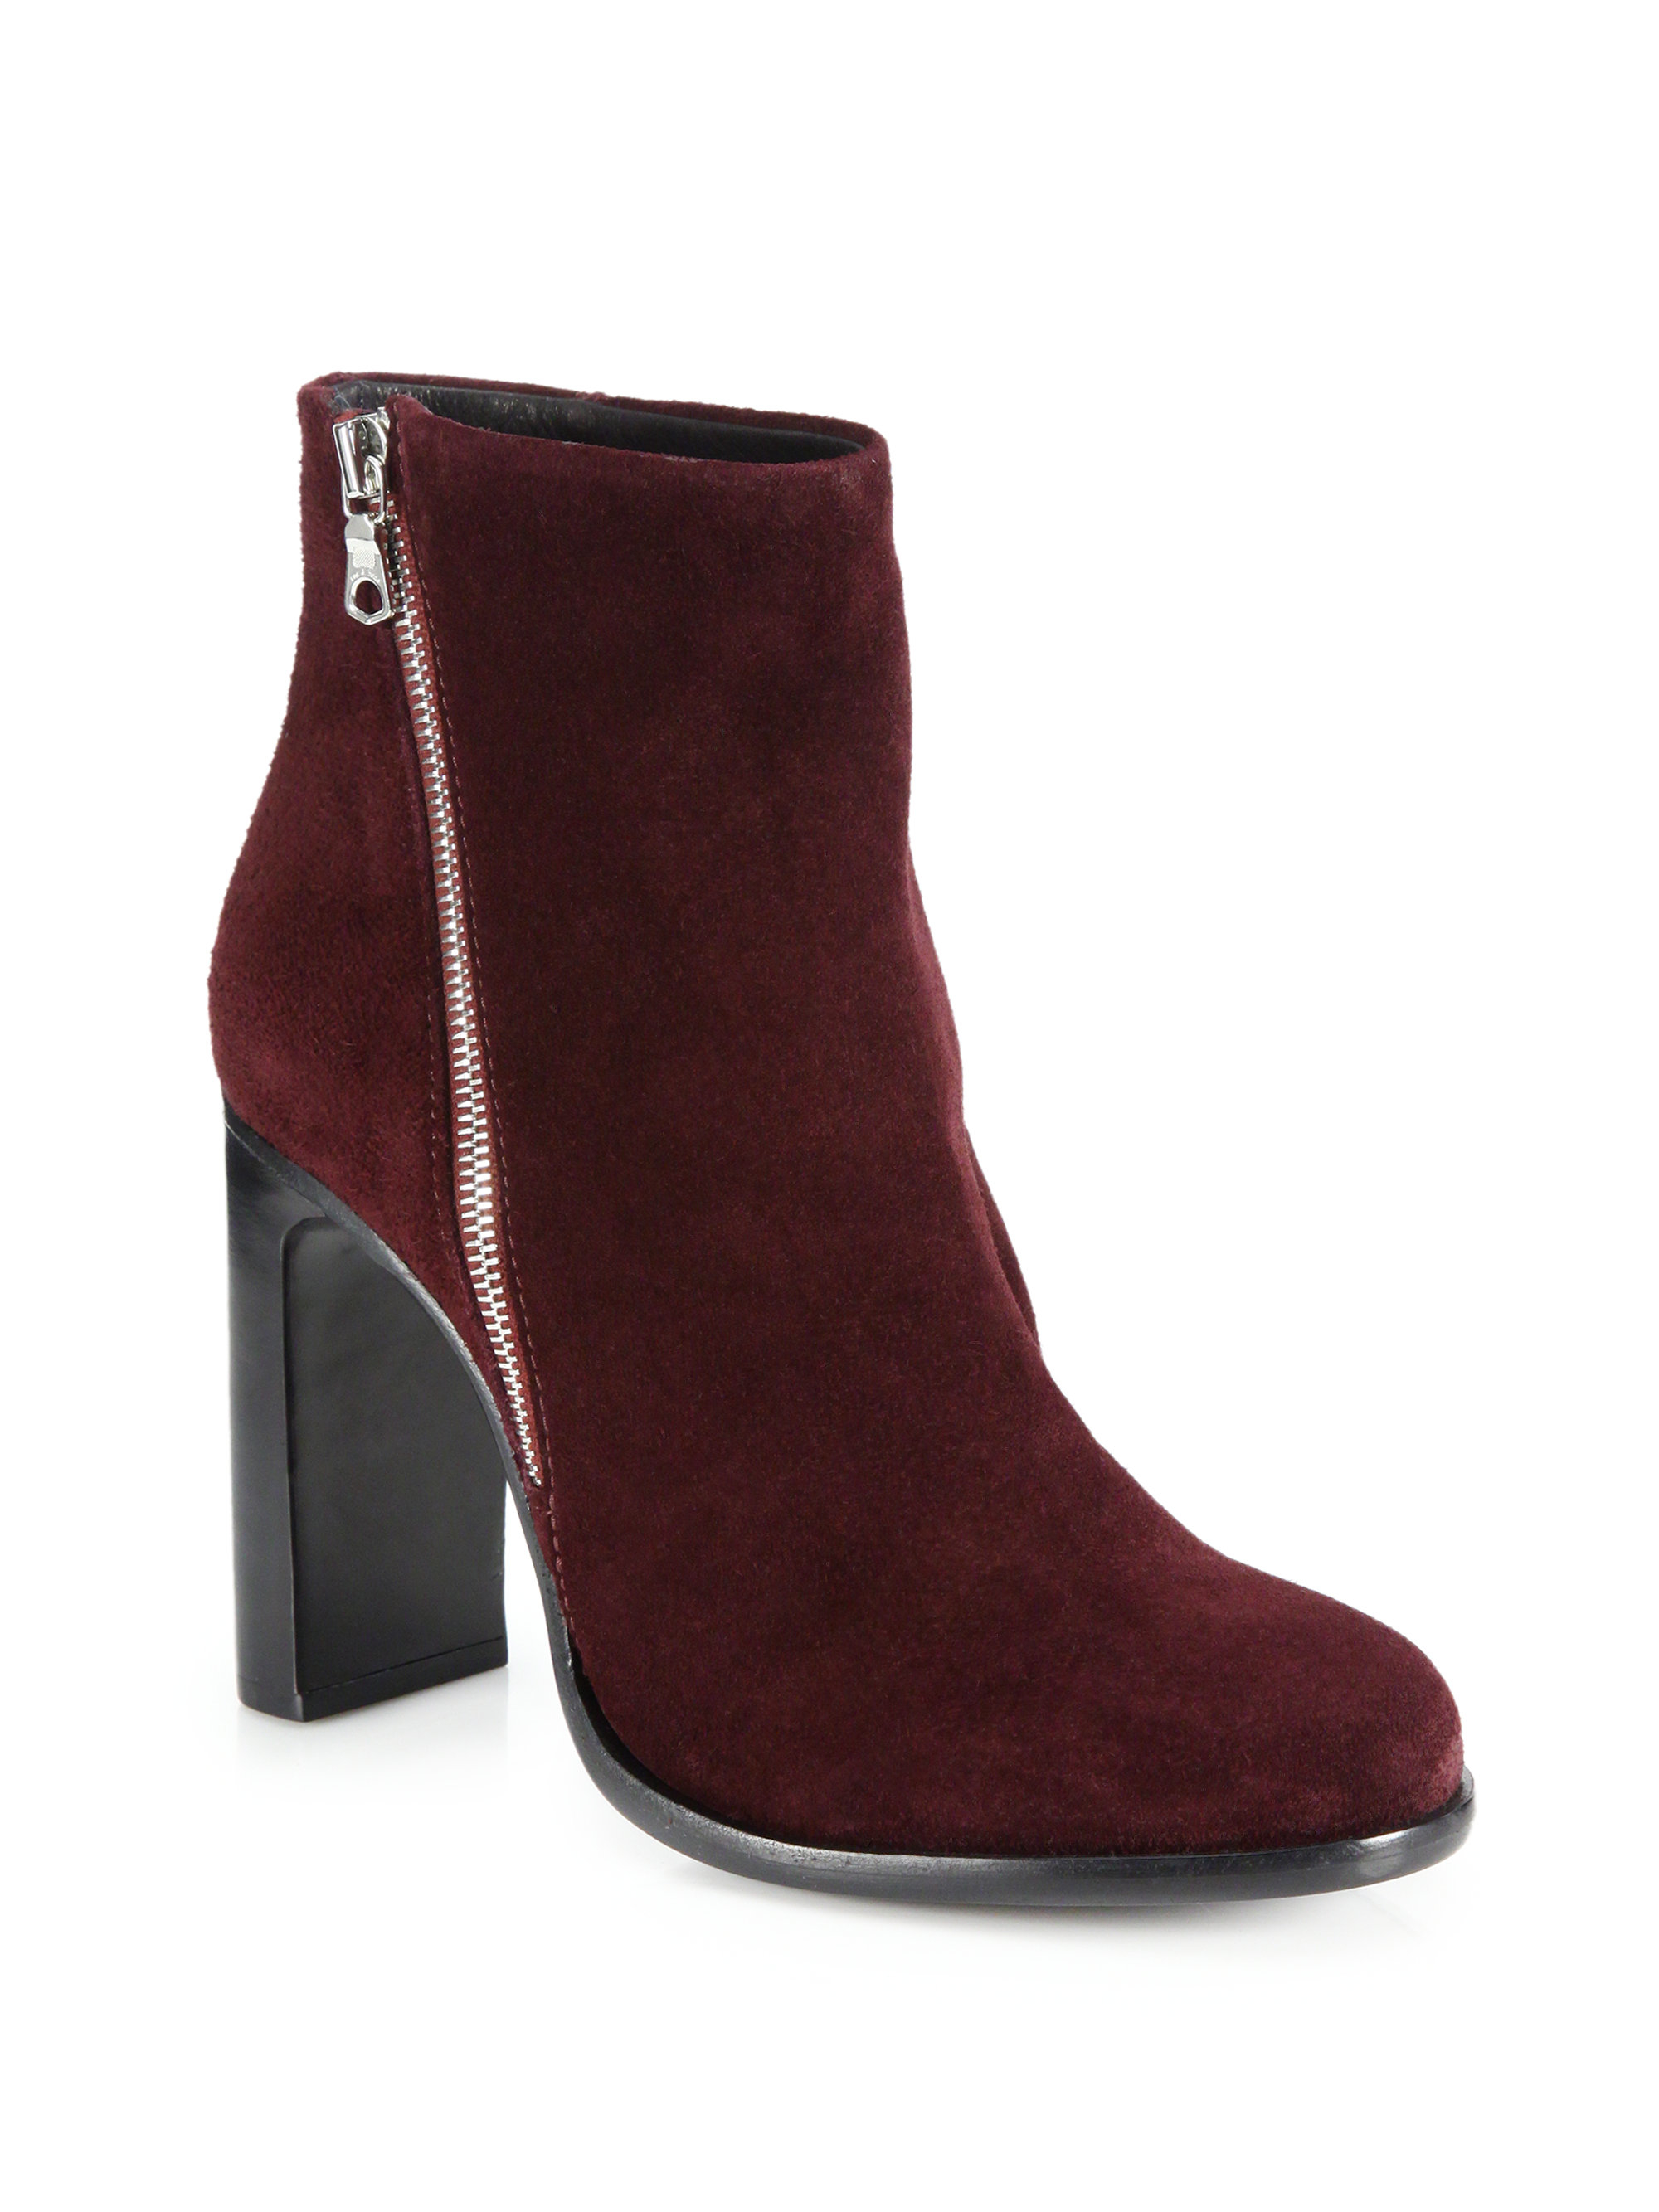 rag bone avery suede high heel booties in purple bordeaux lyst. Black Bedroom Furniture Sets. Home Design Ideas